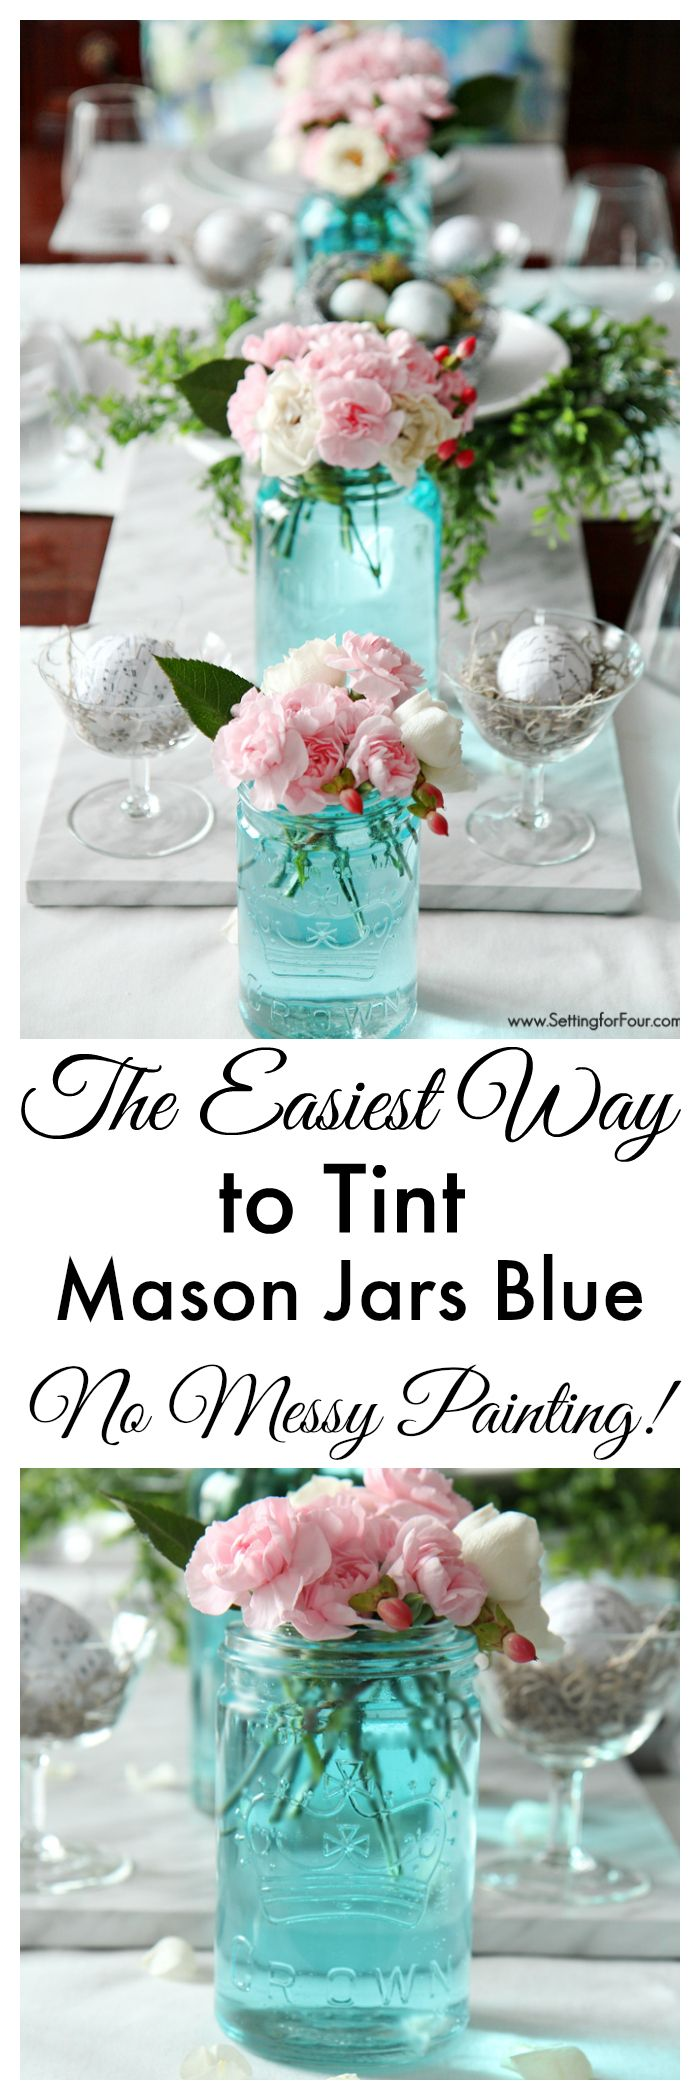 The Easiest Way to Tint Mason Jars Blue - no messy painting! Great idea for weddings, showers, special events and parties! www.settingforfour.com